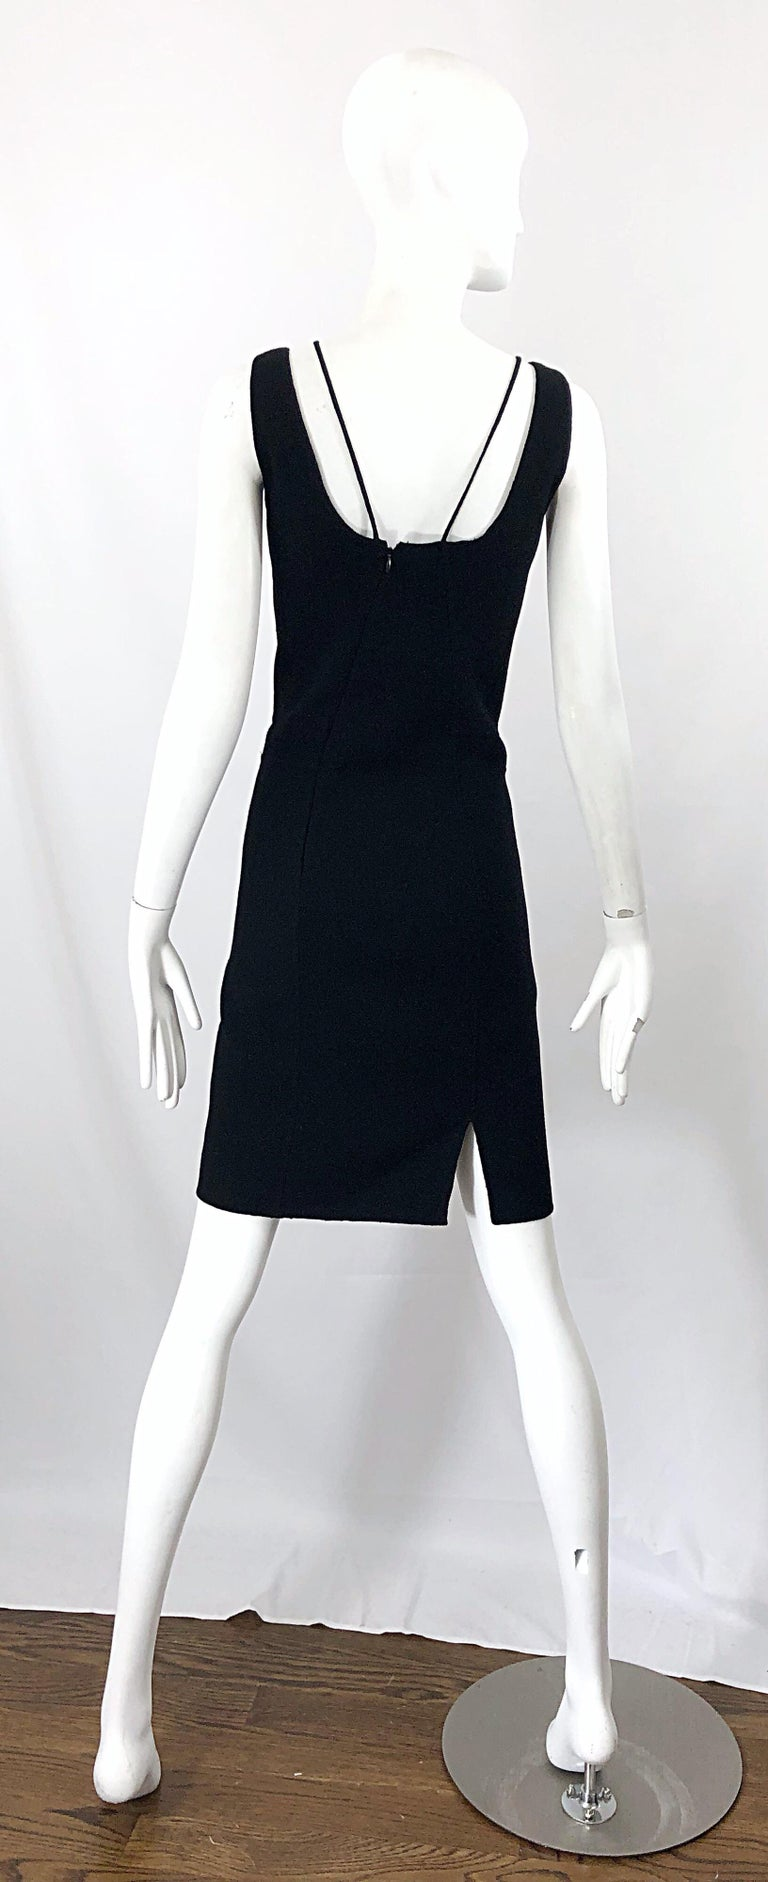 1990s Chado Ralph Rucci Rare Black Wool ' Bondage ' Vintage 90s Dress Size 4  In Excellent Condition For Sale In Chicago, IL